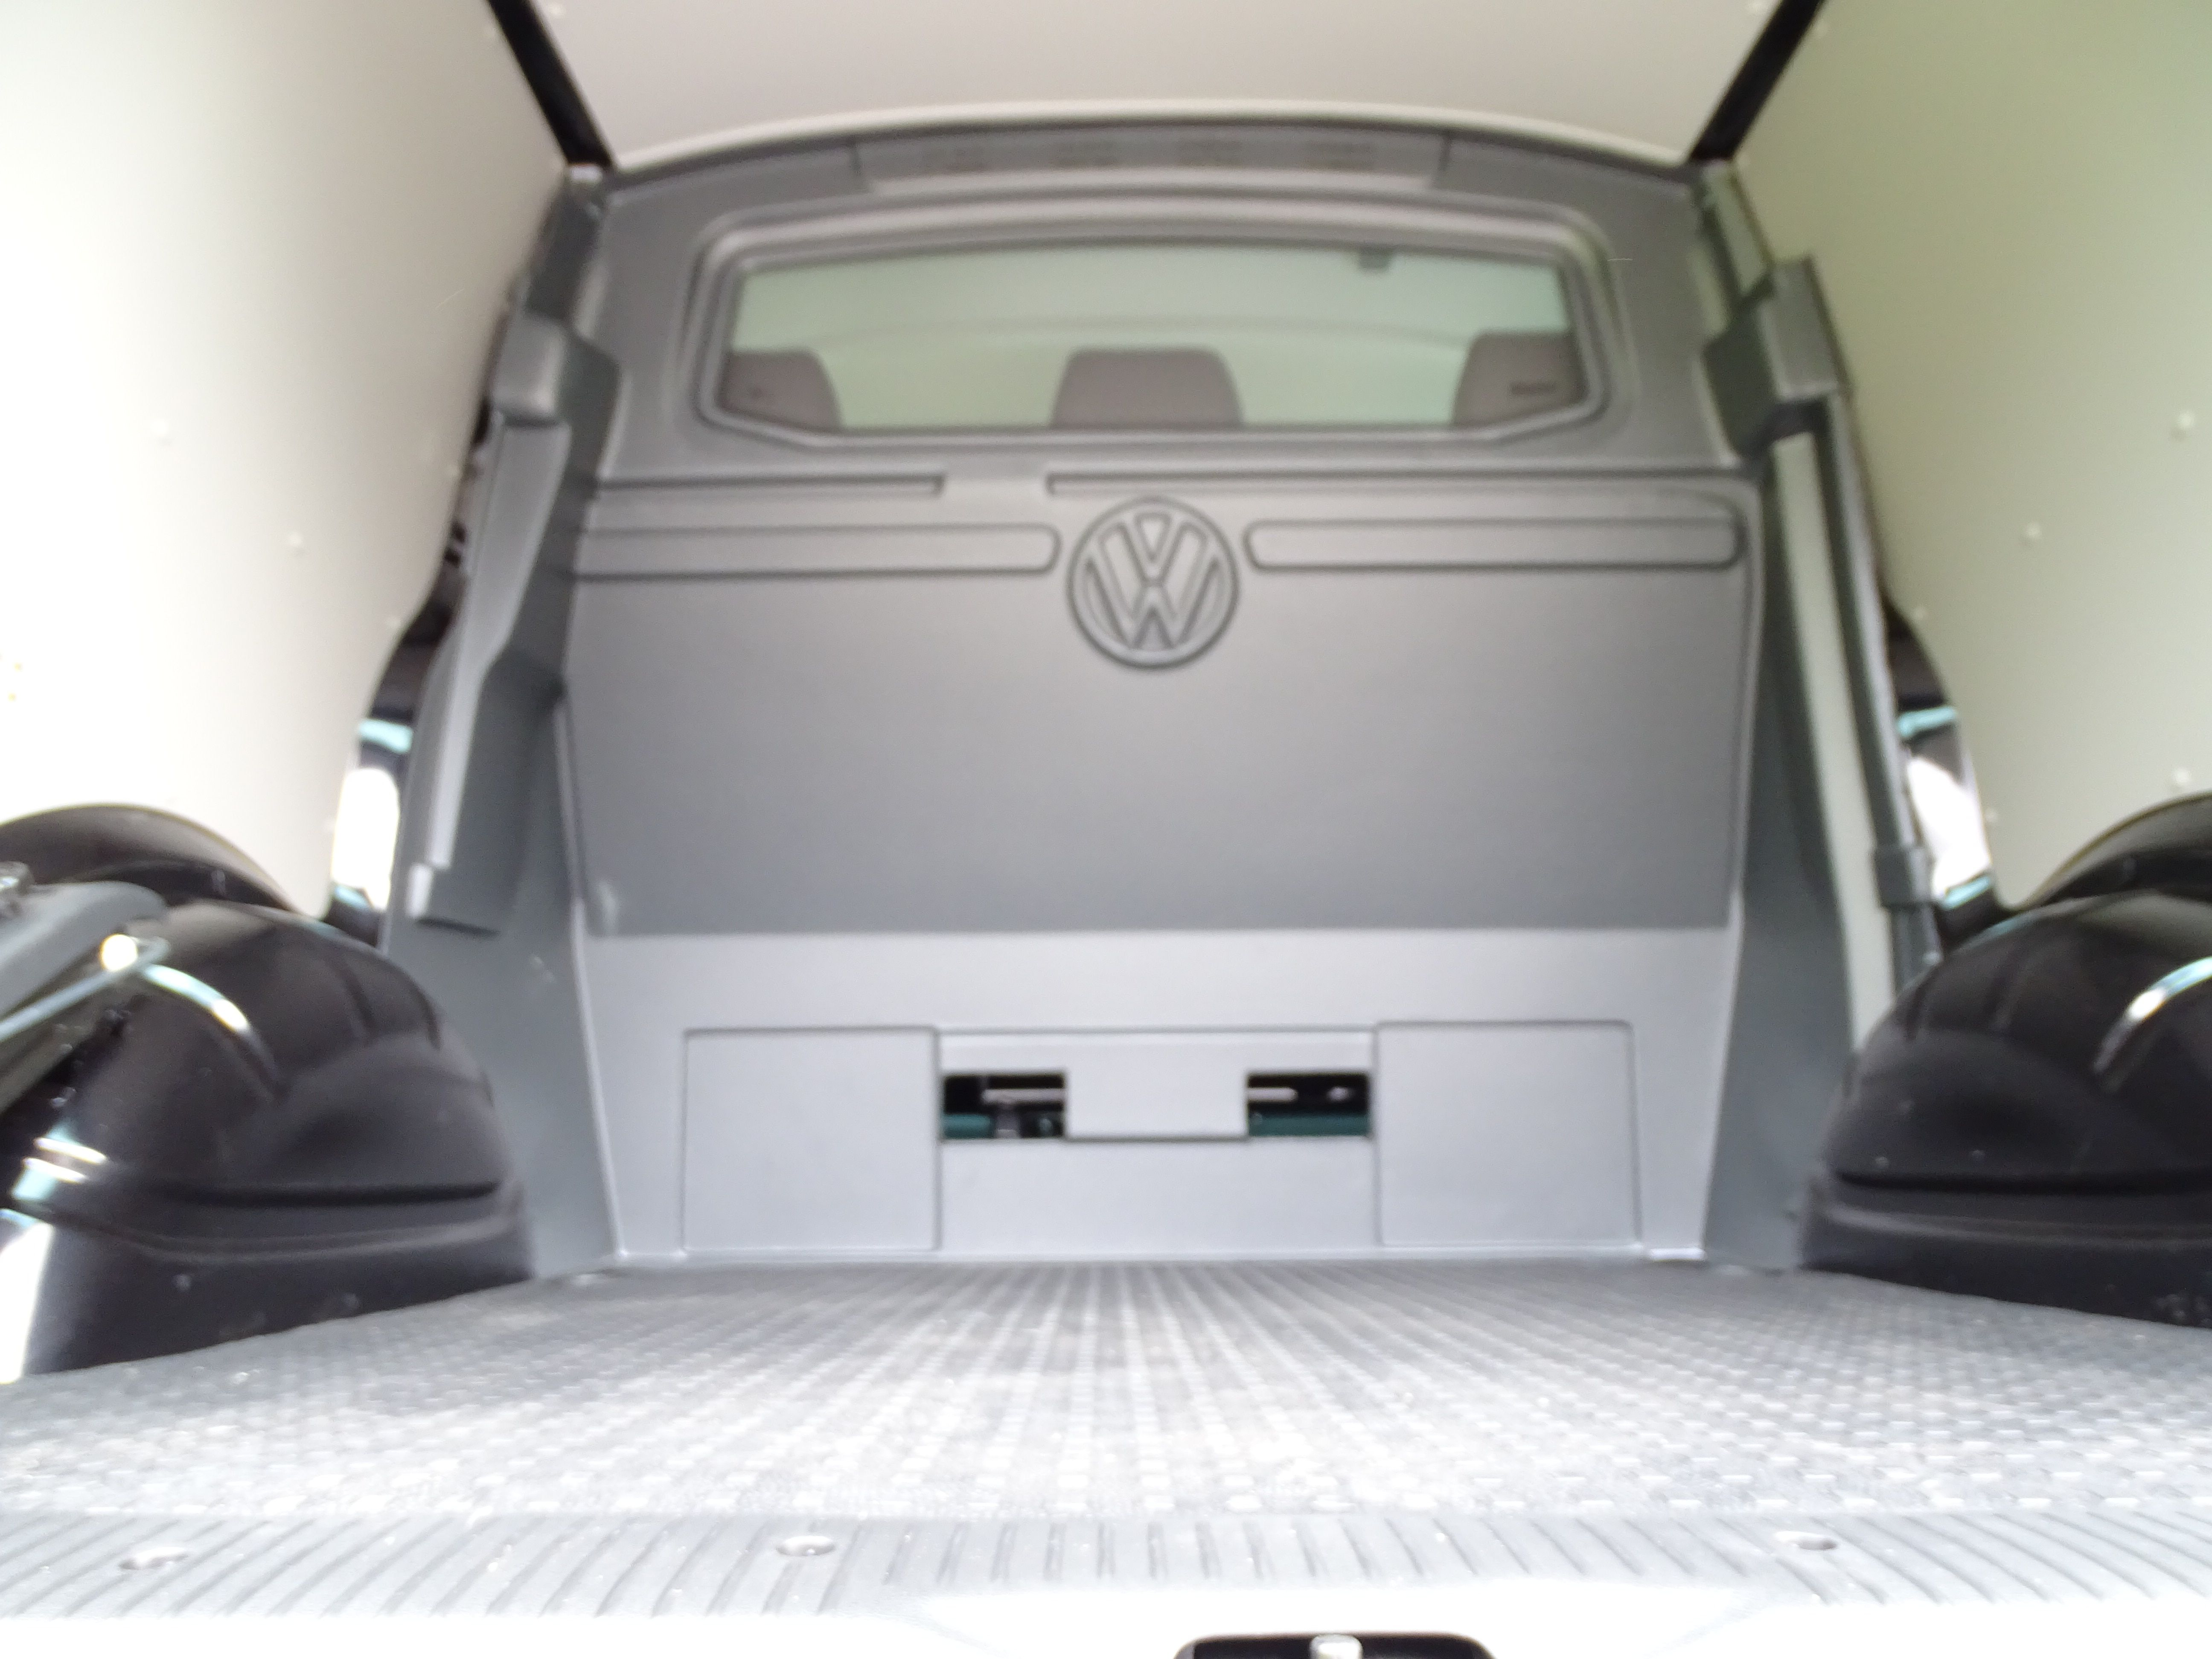 VW Transporter 204ps DSG 4 Motion KOMBI 5 Seats